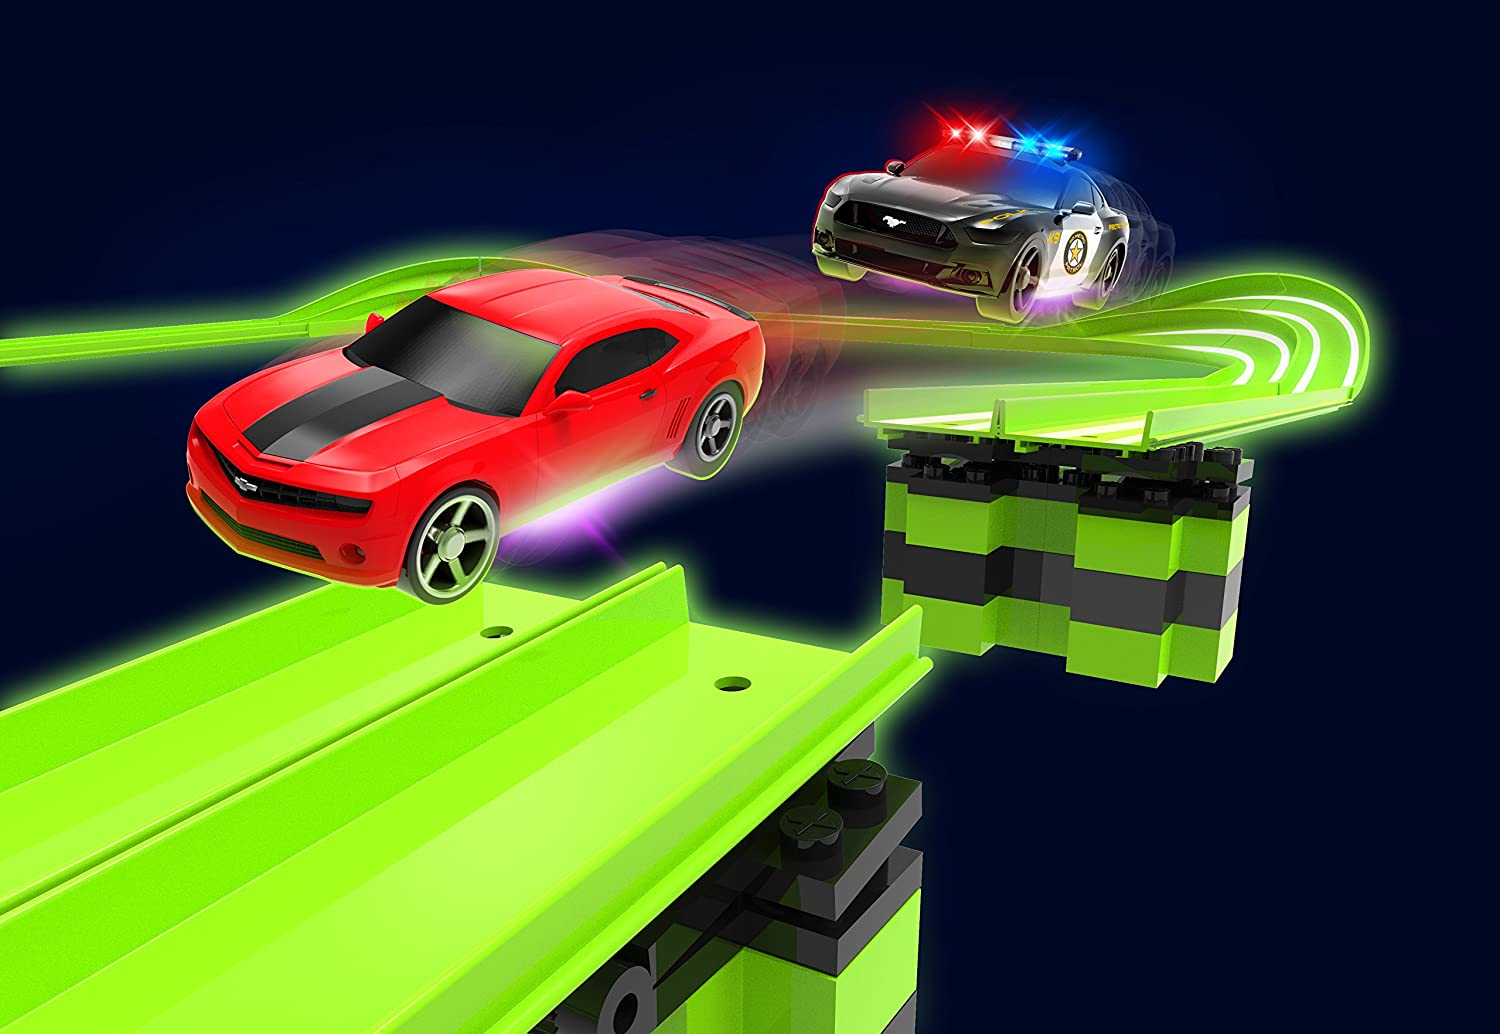 Tracer Racers R//C High Speed Remote Control Police Stunt Speedway Officially Licensed Ford Mustang vs Chevy Camaro Glow Track Set